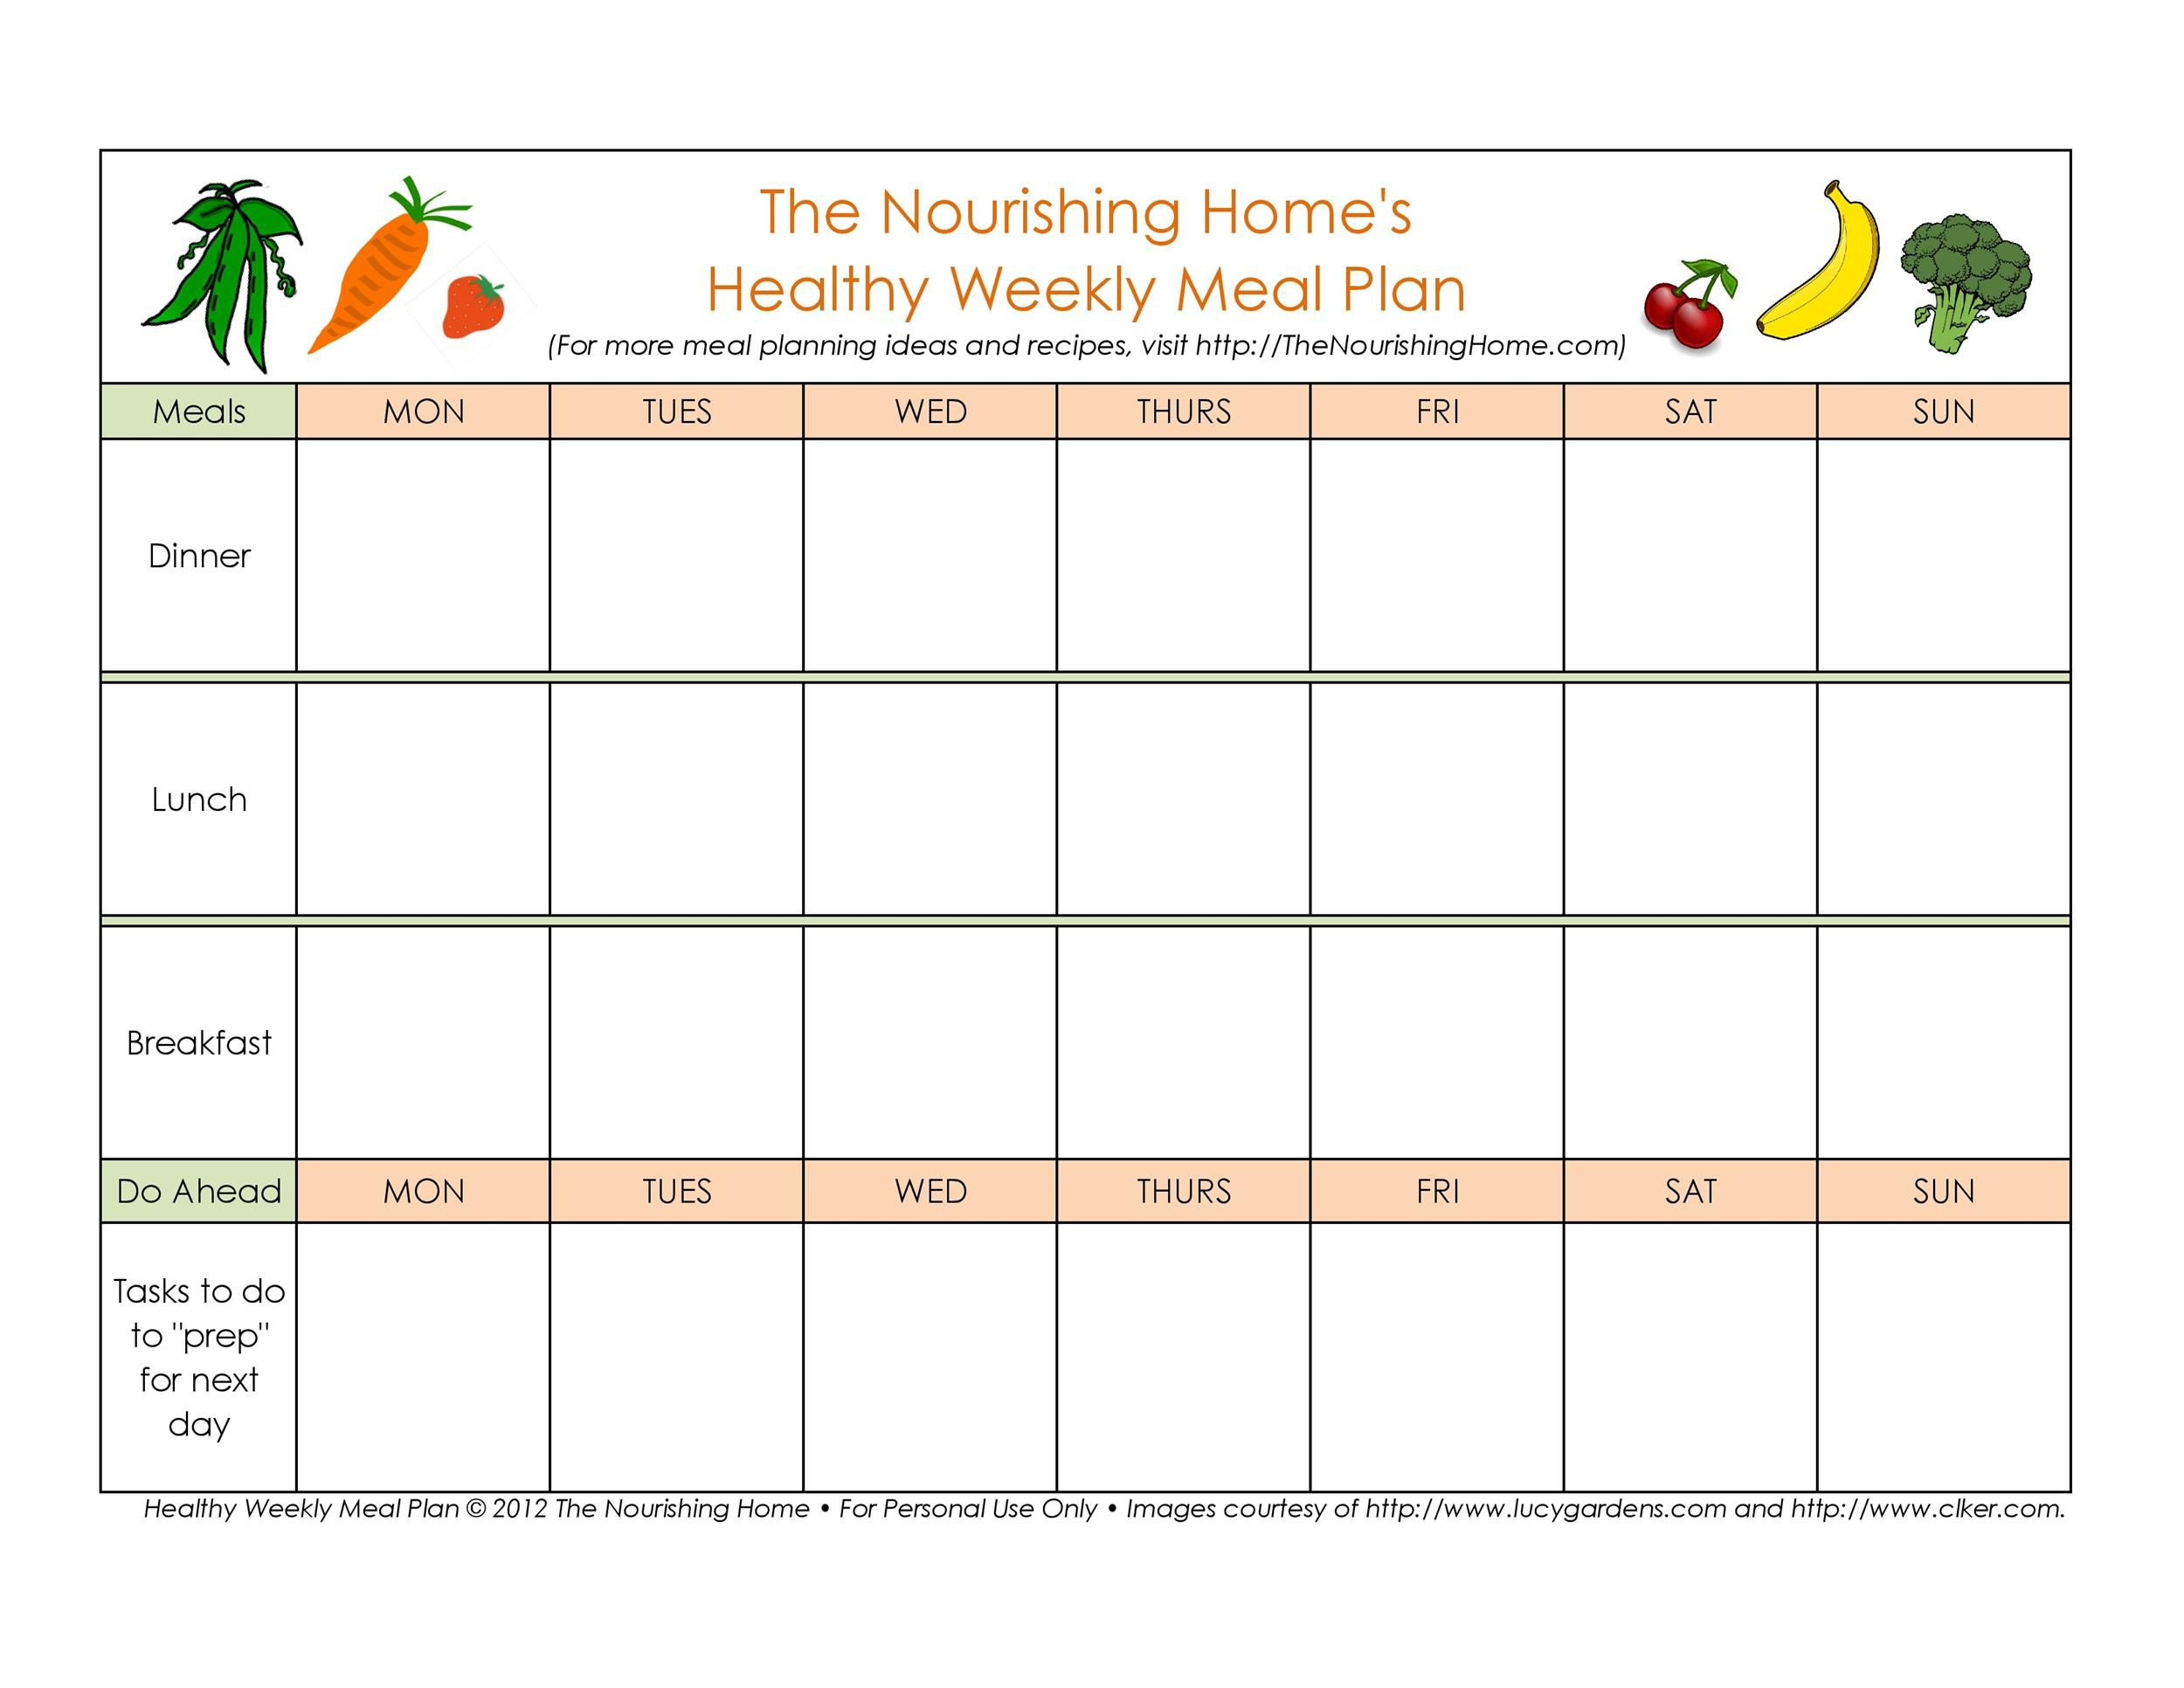 005 Phenomenal Free Meal Plan Template Photo  Templates Easy Keto Printable Planner For Weight LosFull